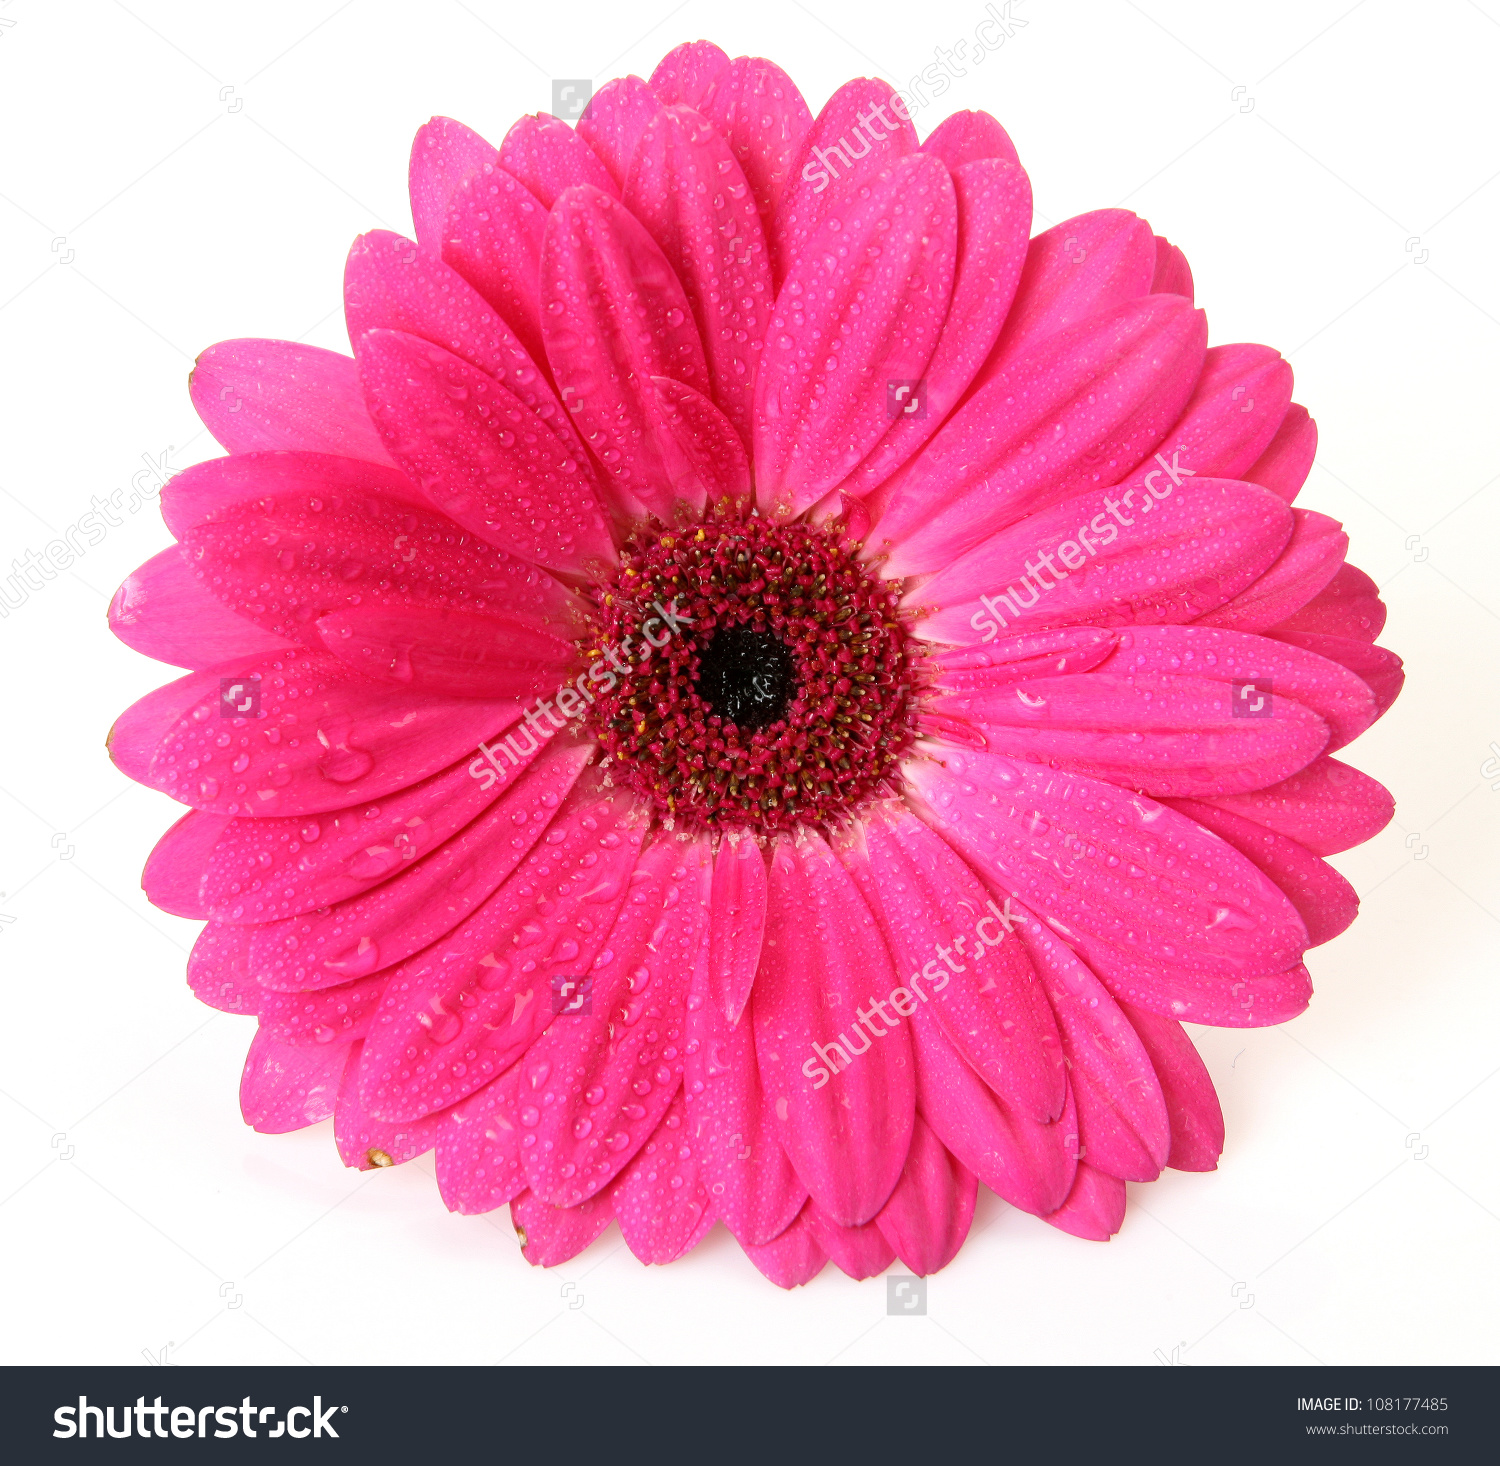 Free Photo Pink Flower Pink Plant Flower Free Download Jooinn